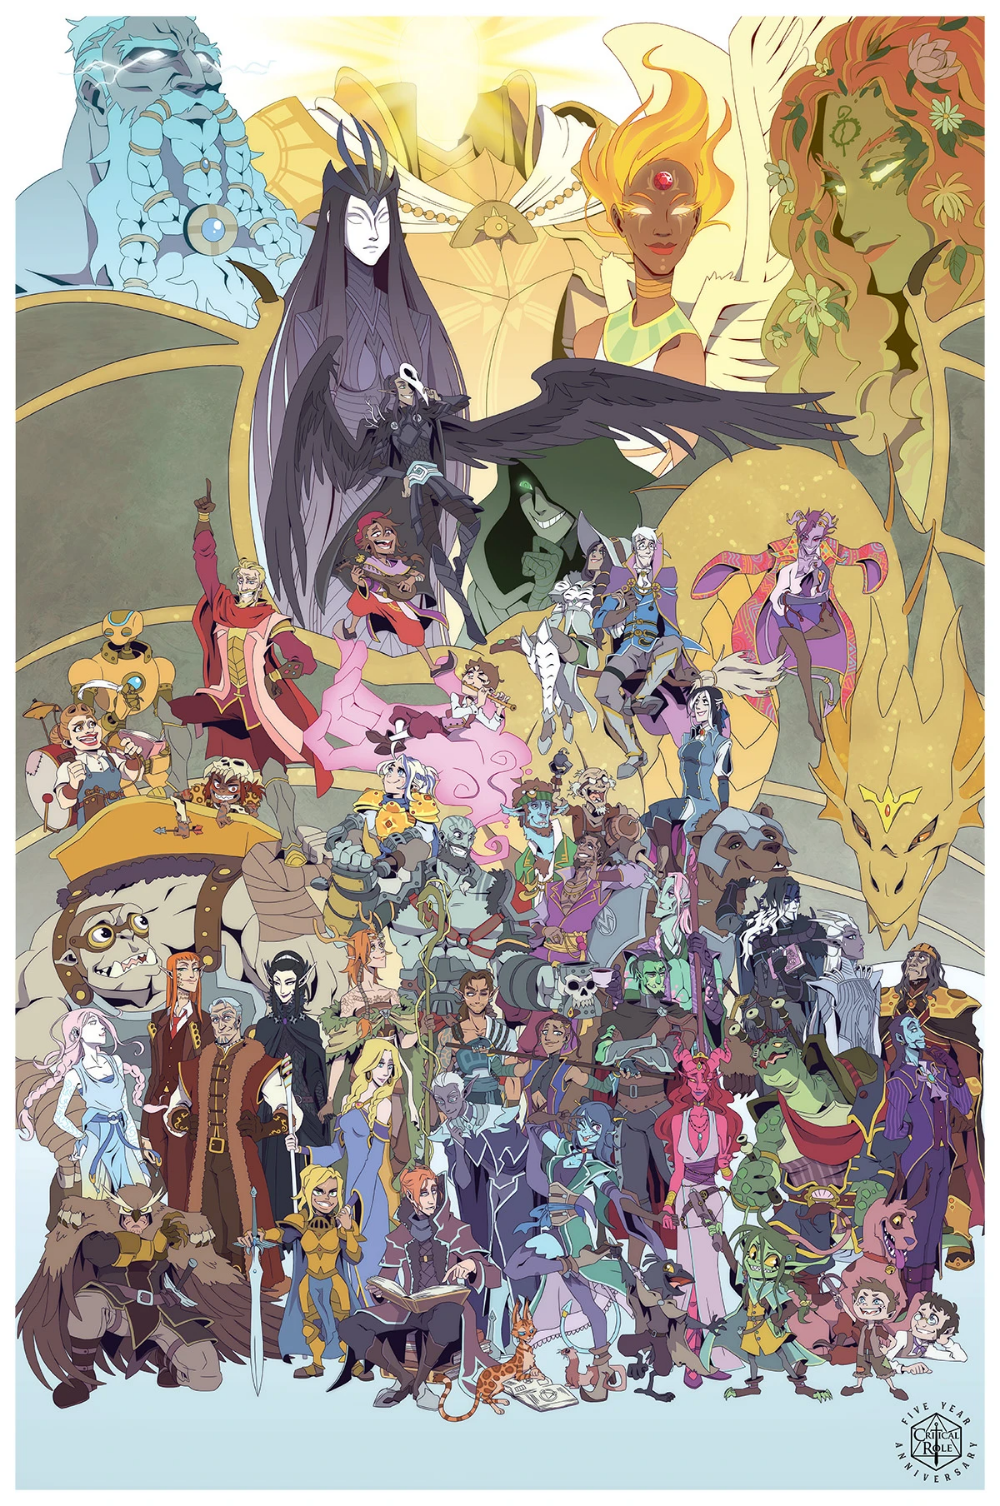 Critical Role 5 Year Anniversary Poster In 2020 Critical Role Critical Role Characters Dungeons And Dragons